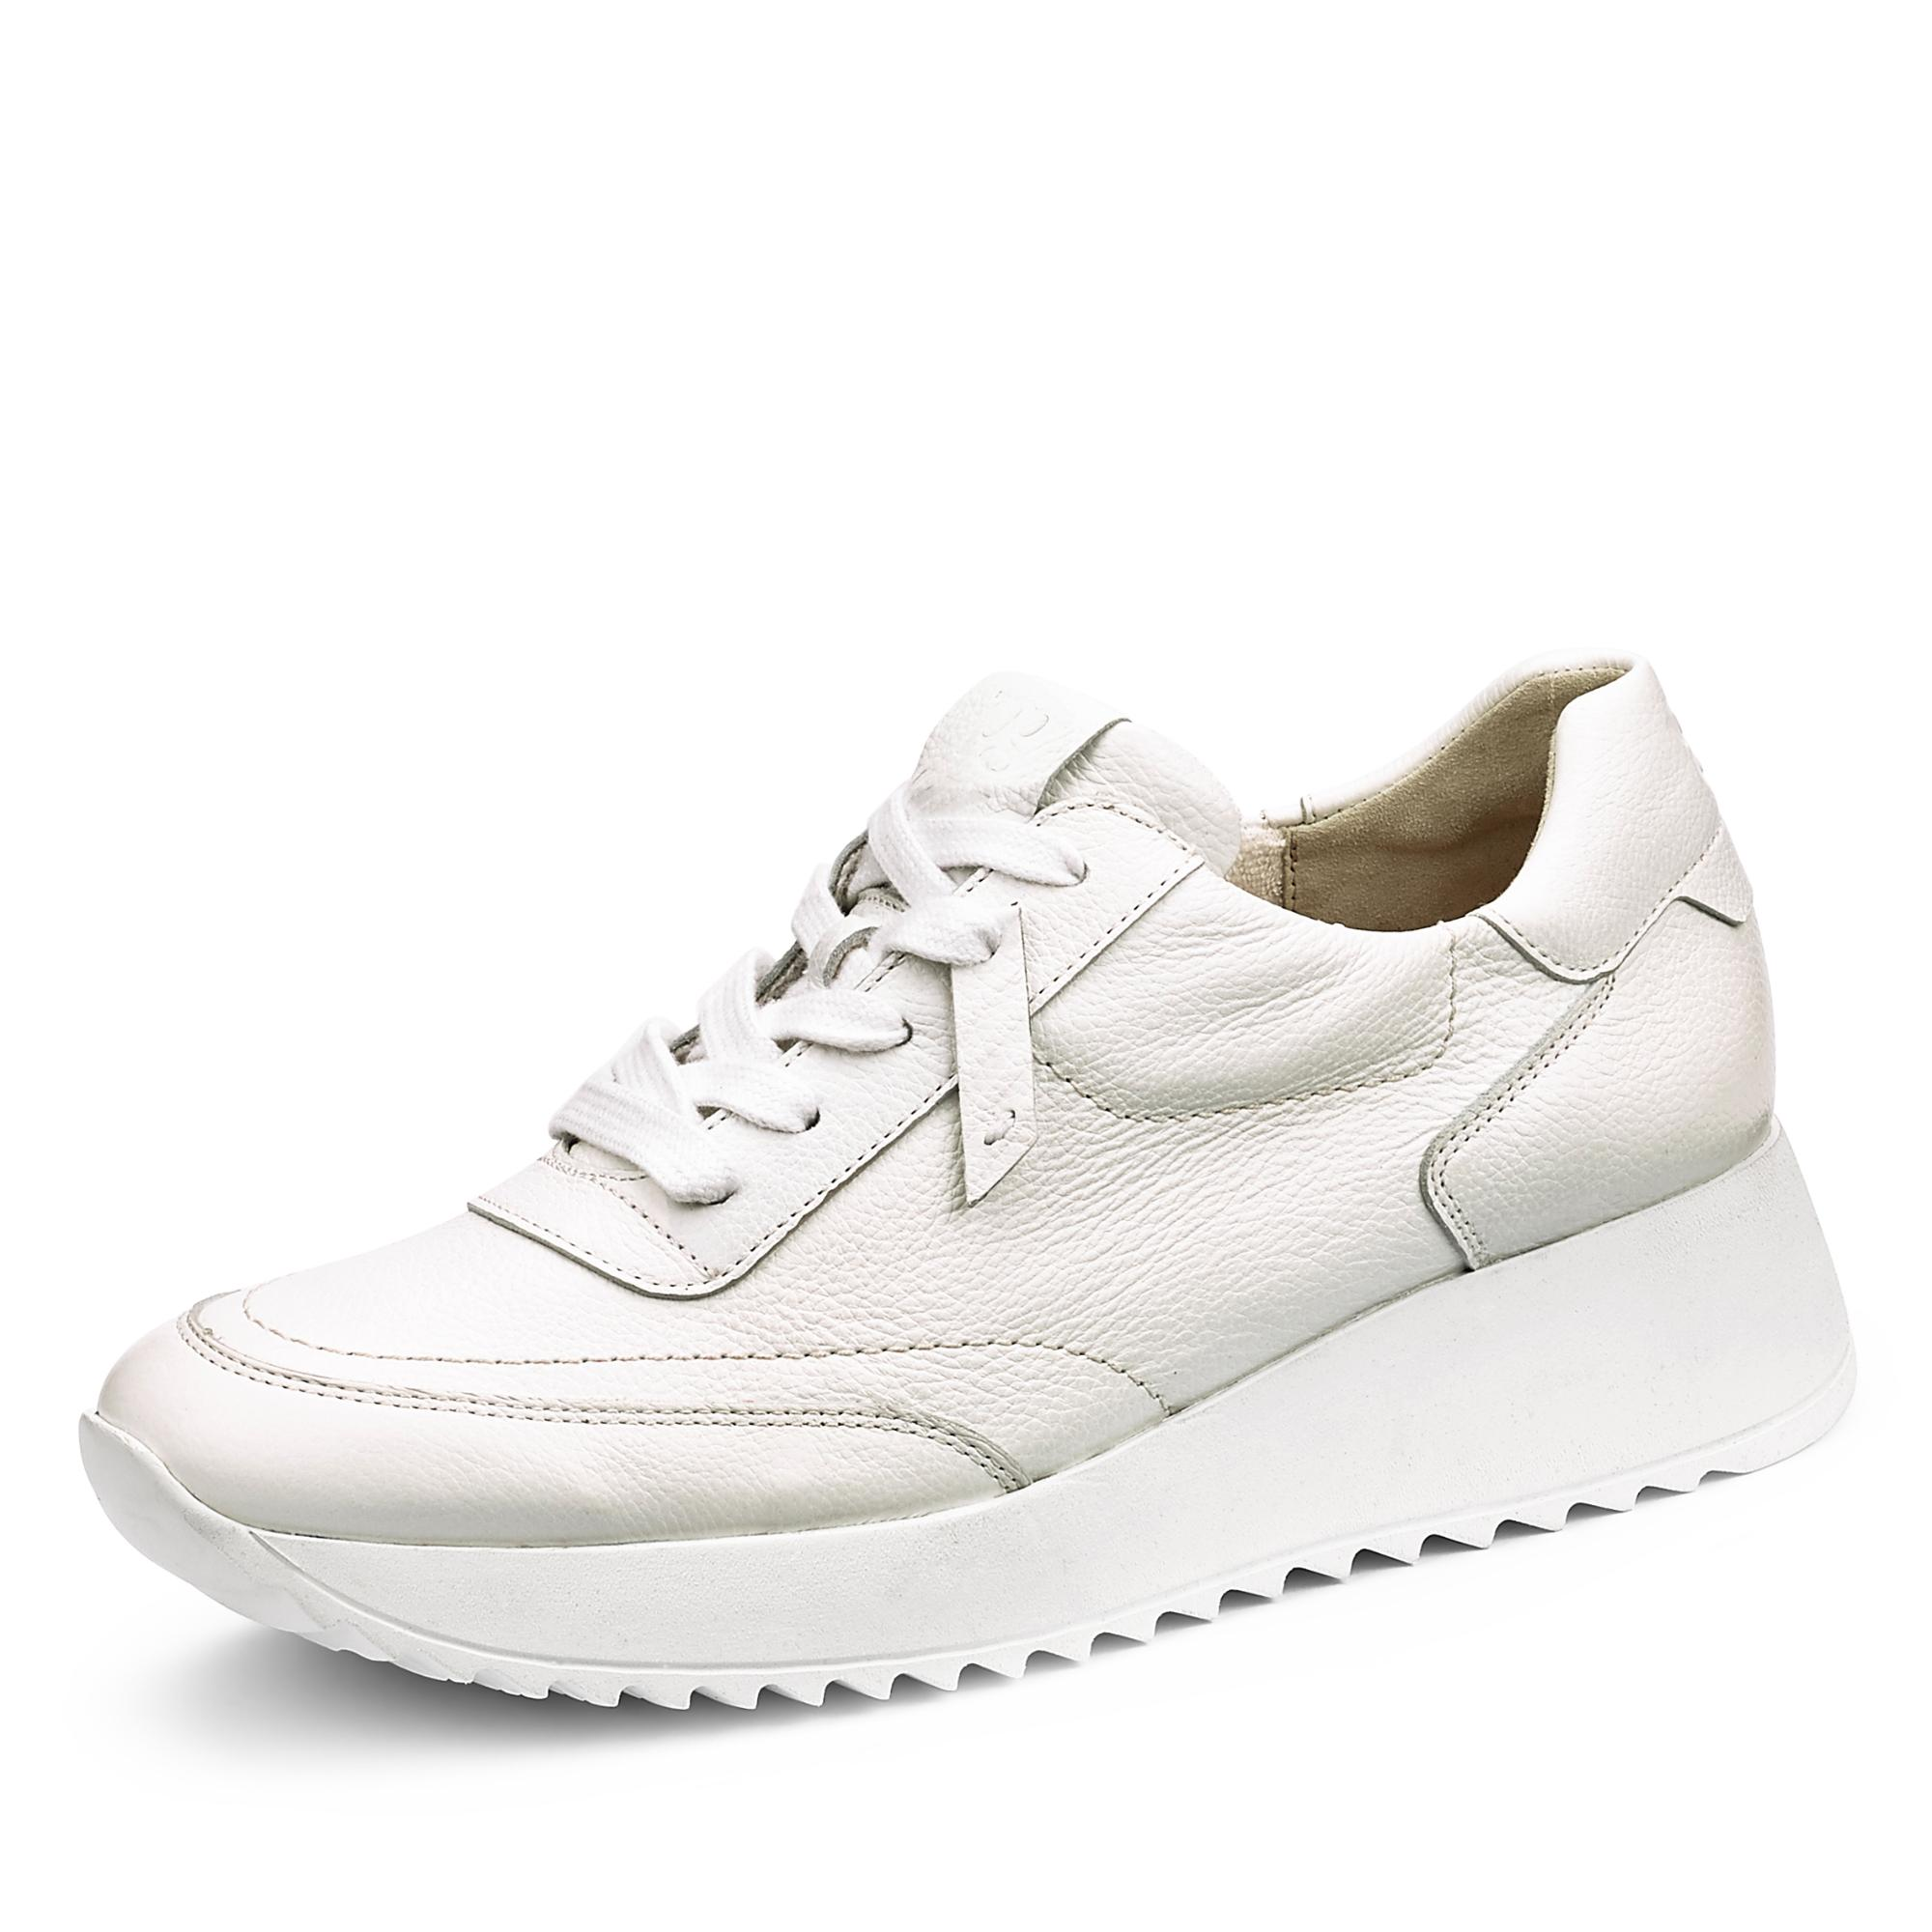 Paul Green Sneakers Low, Laufsohle: Sonstiges Material